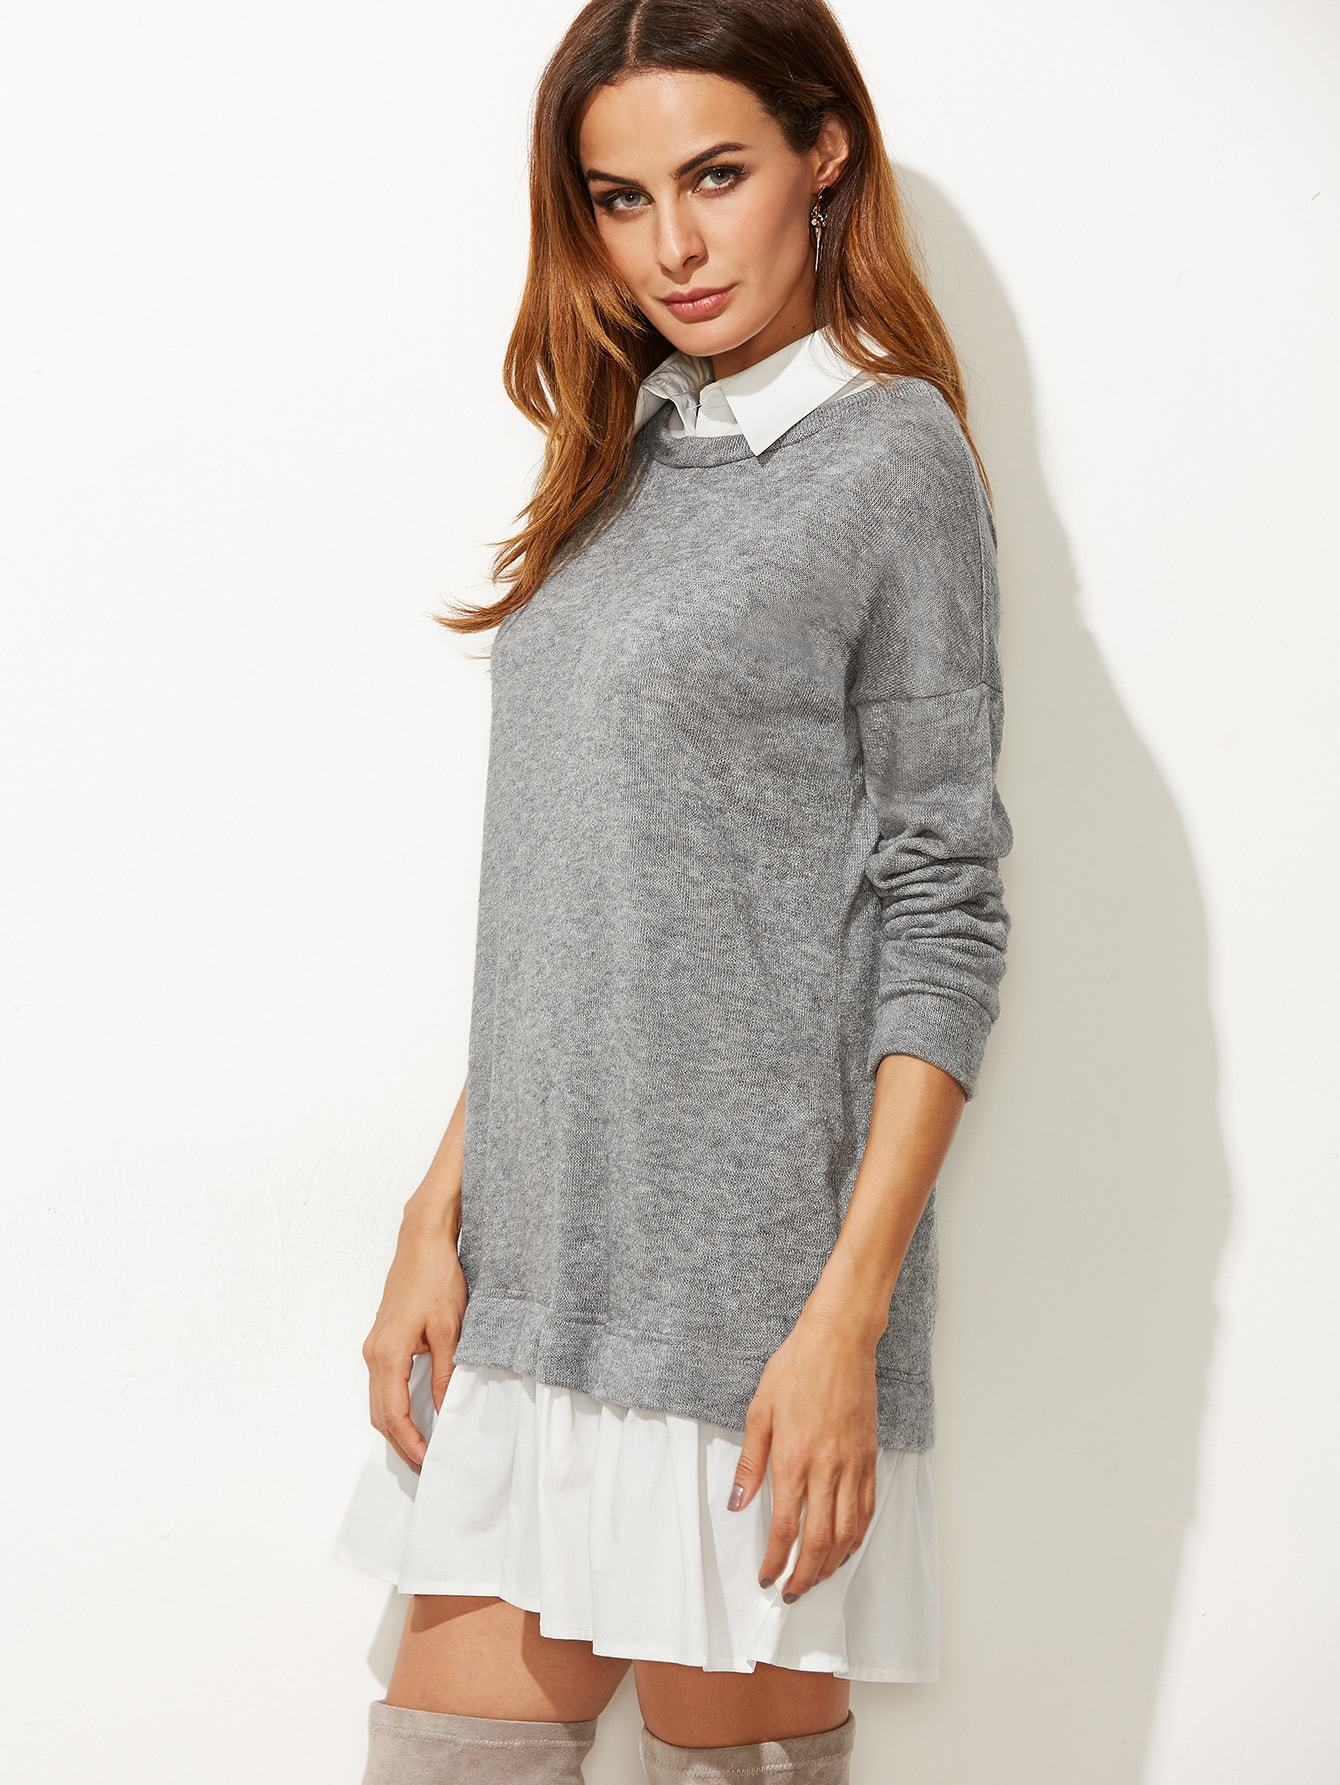 Contrast Collar Sweatshirt Dress - LoveSylvester